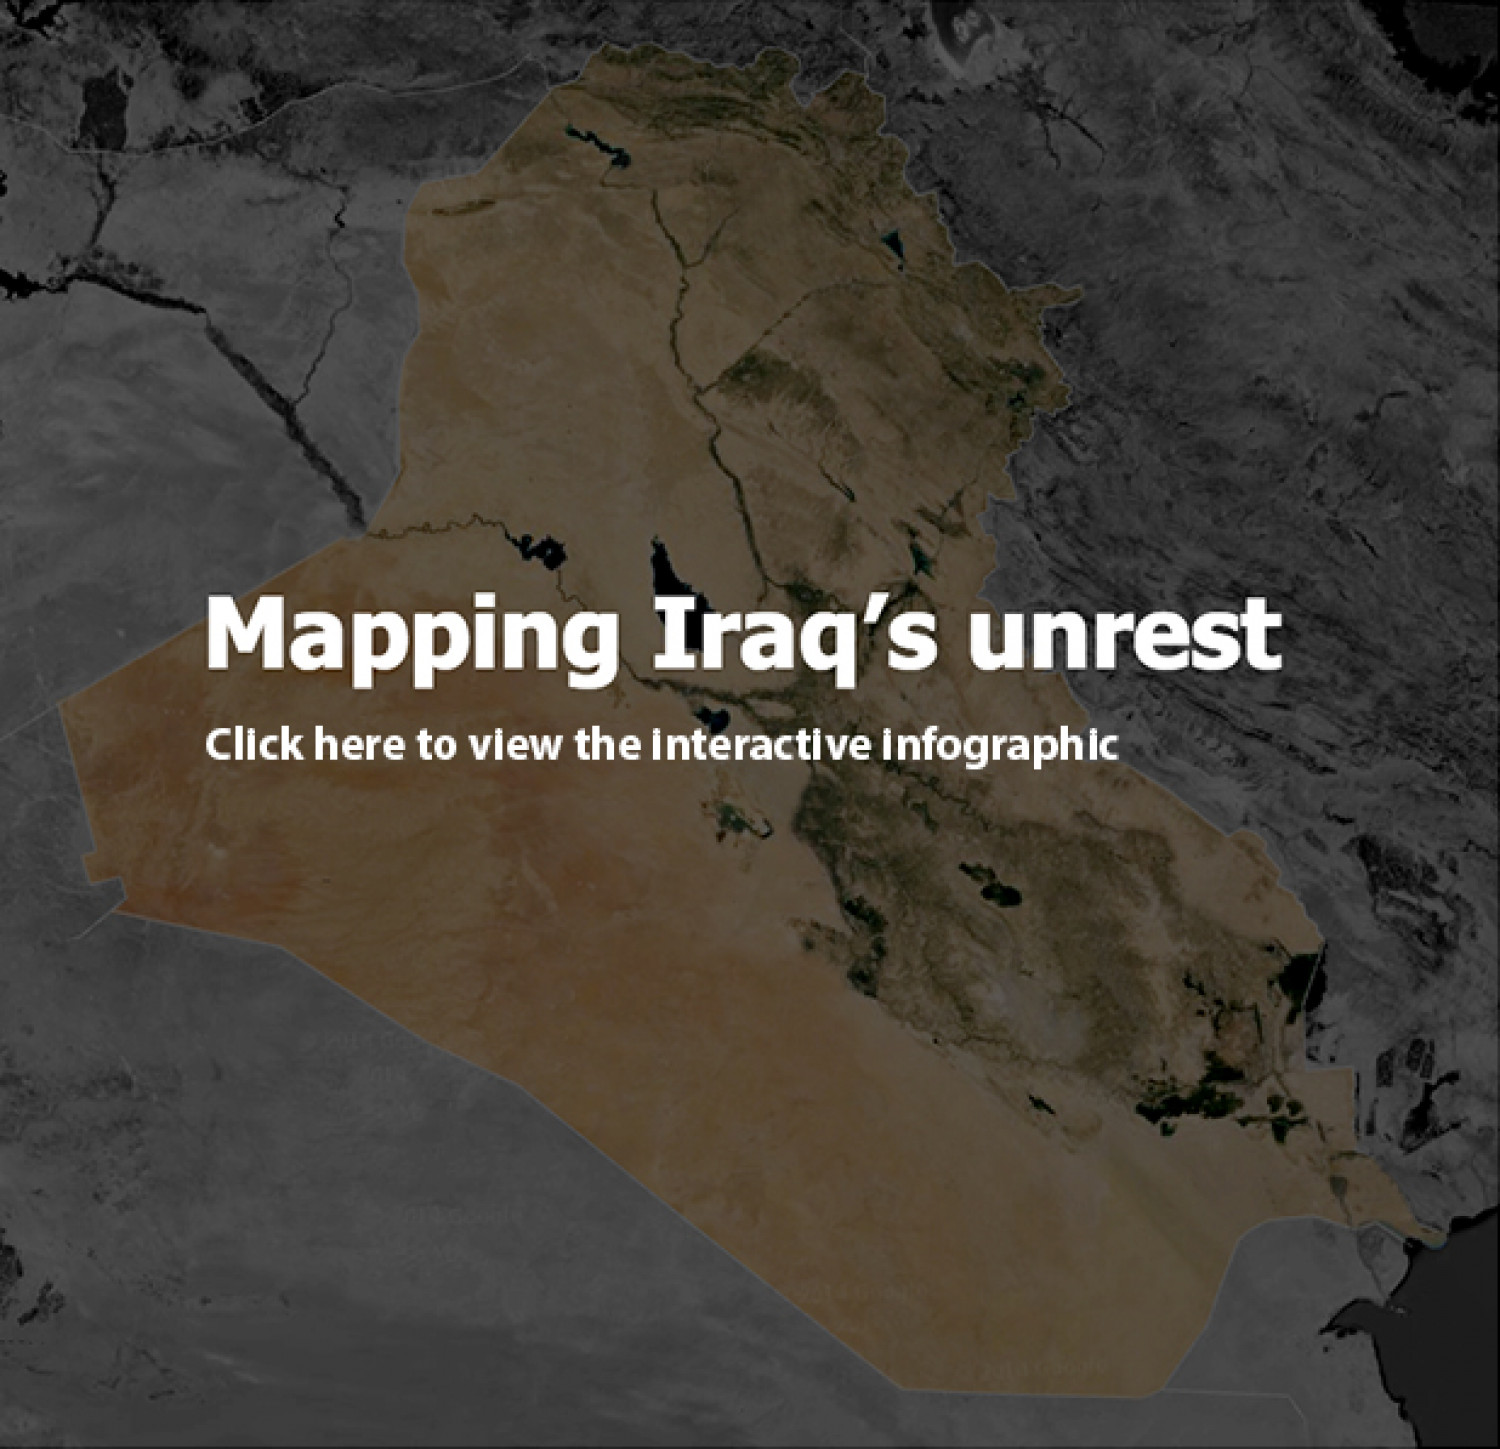 Mapping Iraq's Unrest Infographic